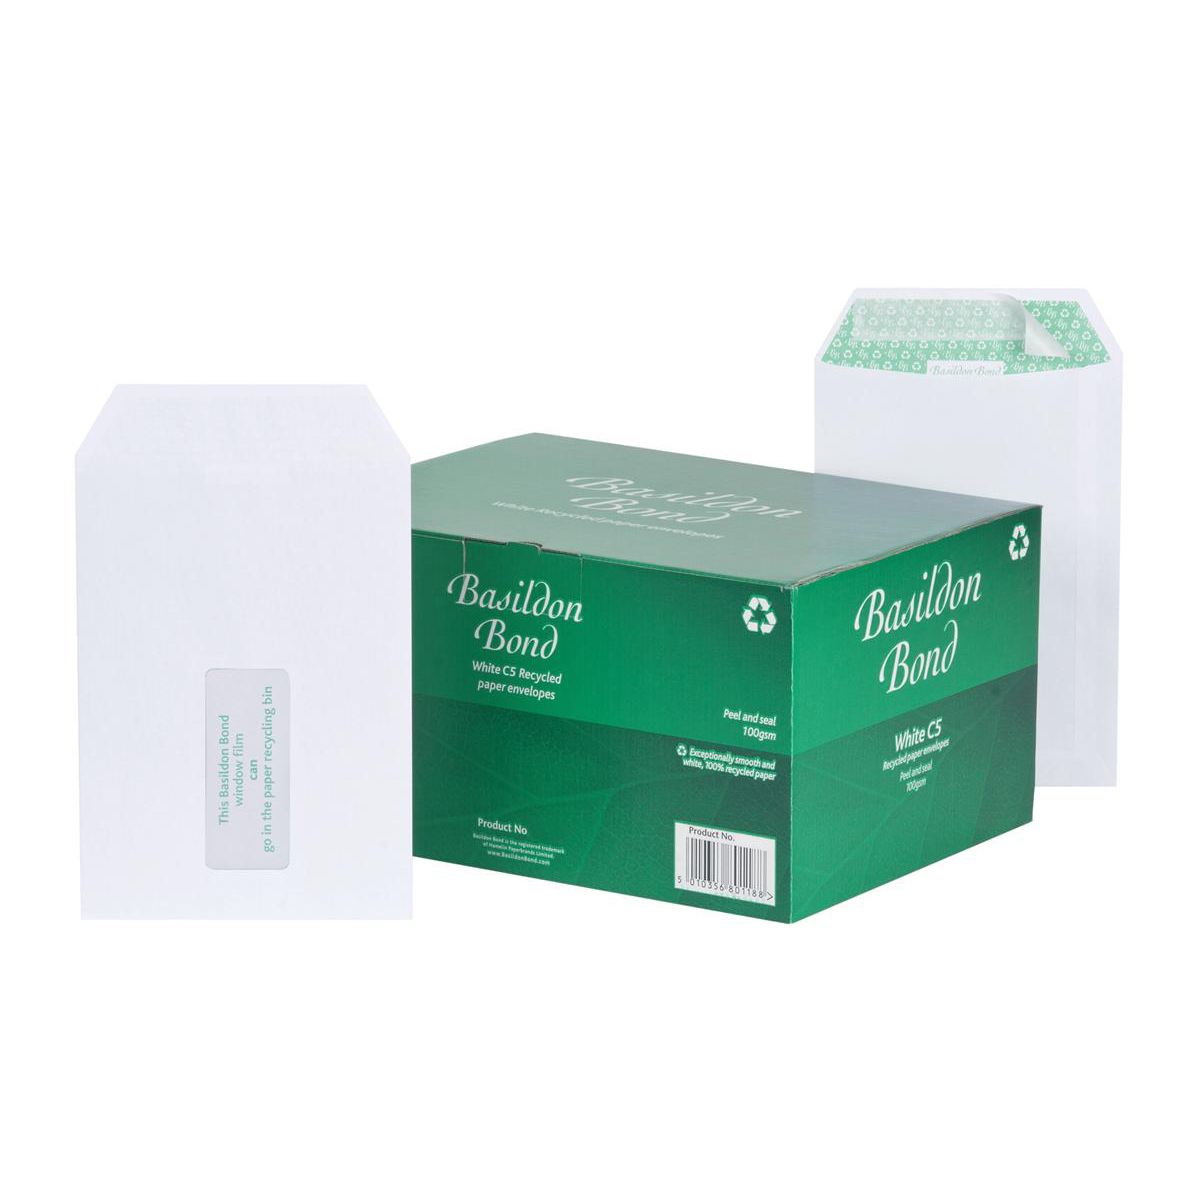 Basildon Bond Envelopes Recycled Pocket P&S Window 120gsm C5 White Ref J80119 Pack 500 PRIZE DRAW